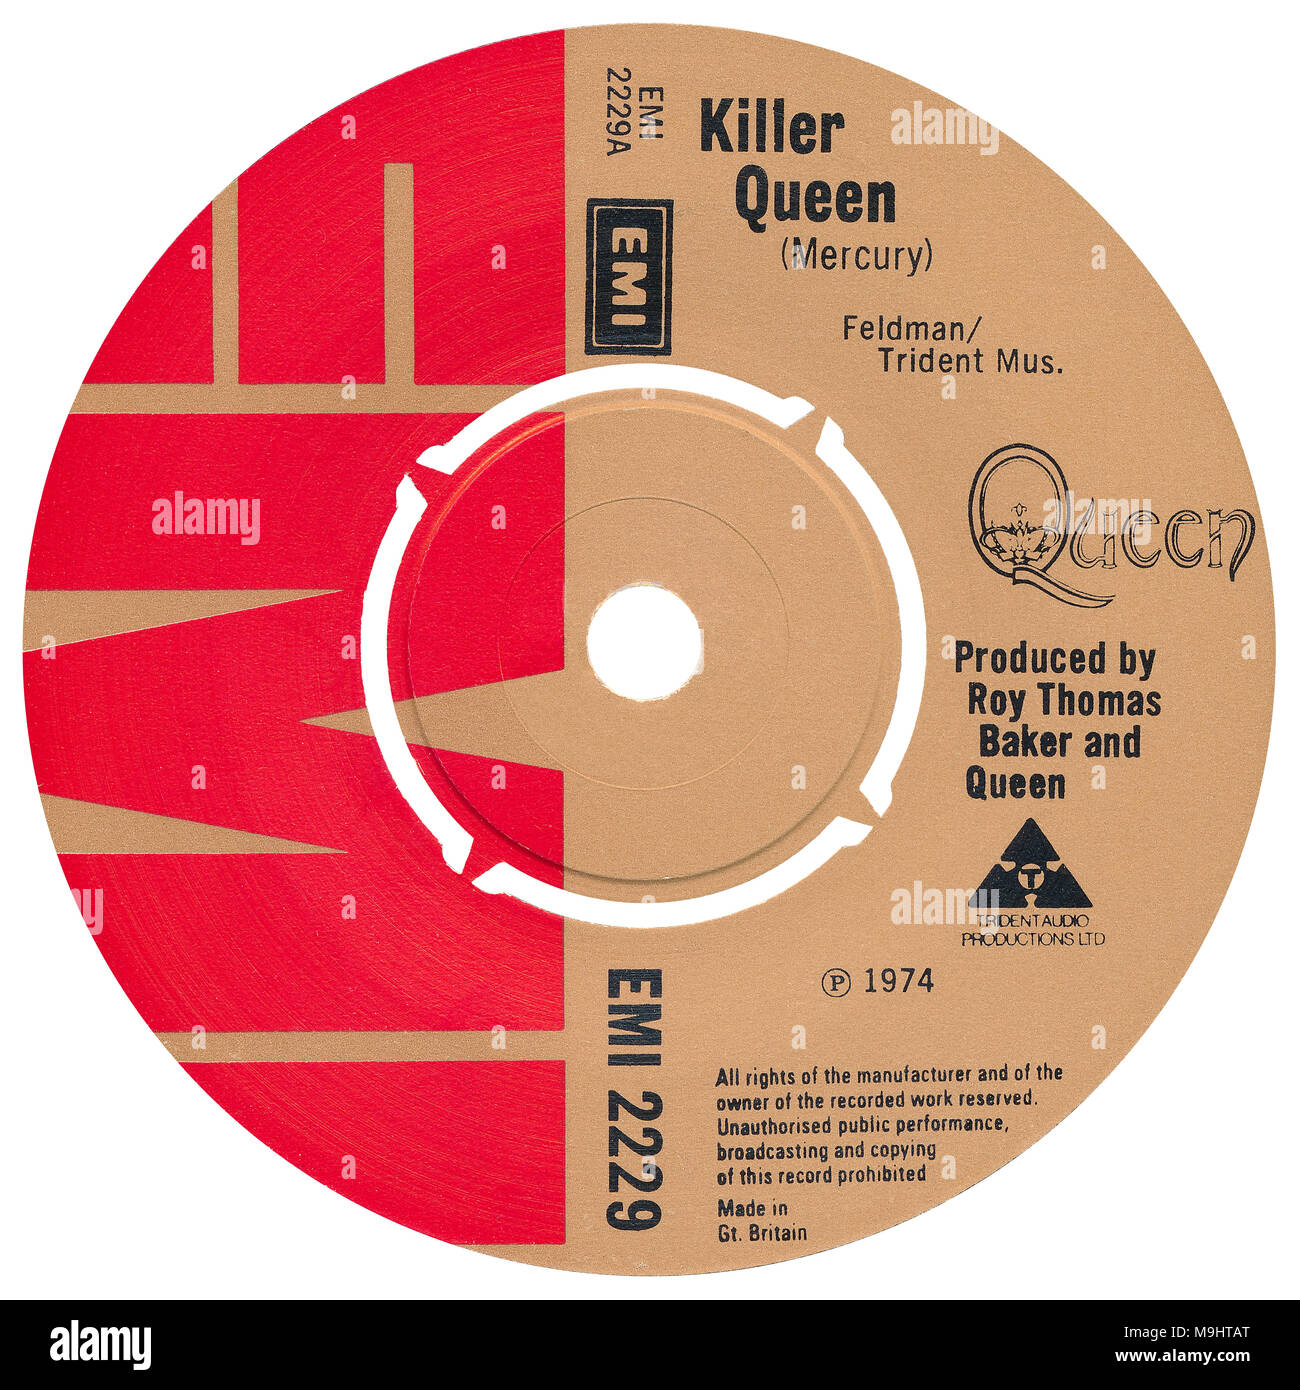 """45 RPM 7"""" UK record label of Killer Queen by Queen. Written by Freddie Mercury and produced by Roy Thomas Baker and Queen. Released in October 1974 on EMI Records. Stock Photo"""